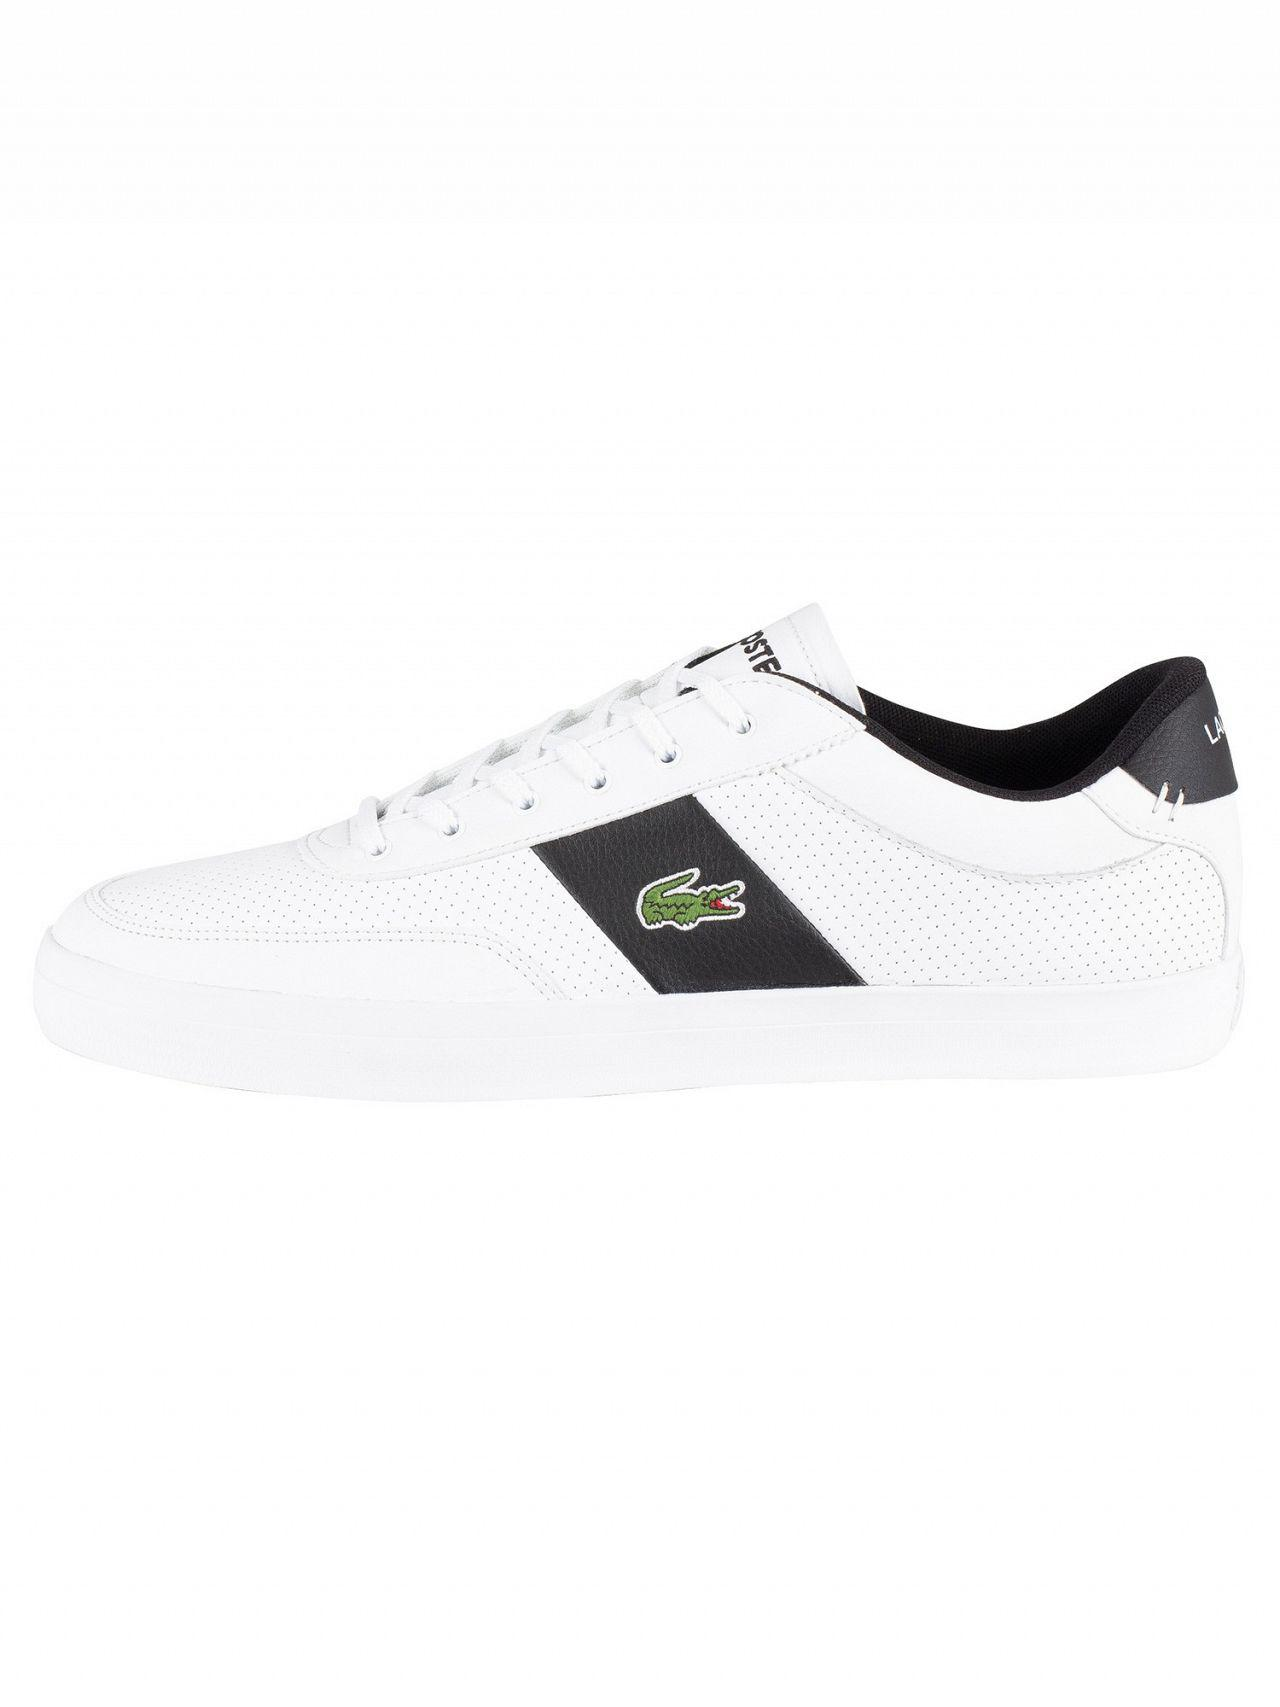 ea67d1ece754ae Lyst - Lacoste Court-master 119 2 Perforated Leather Trainers in White for  Men - Save 5%